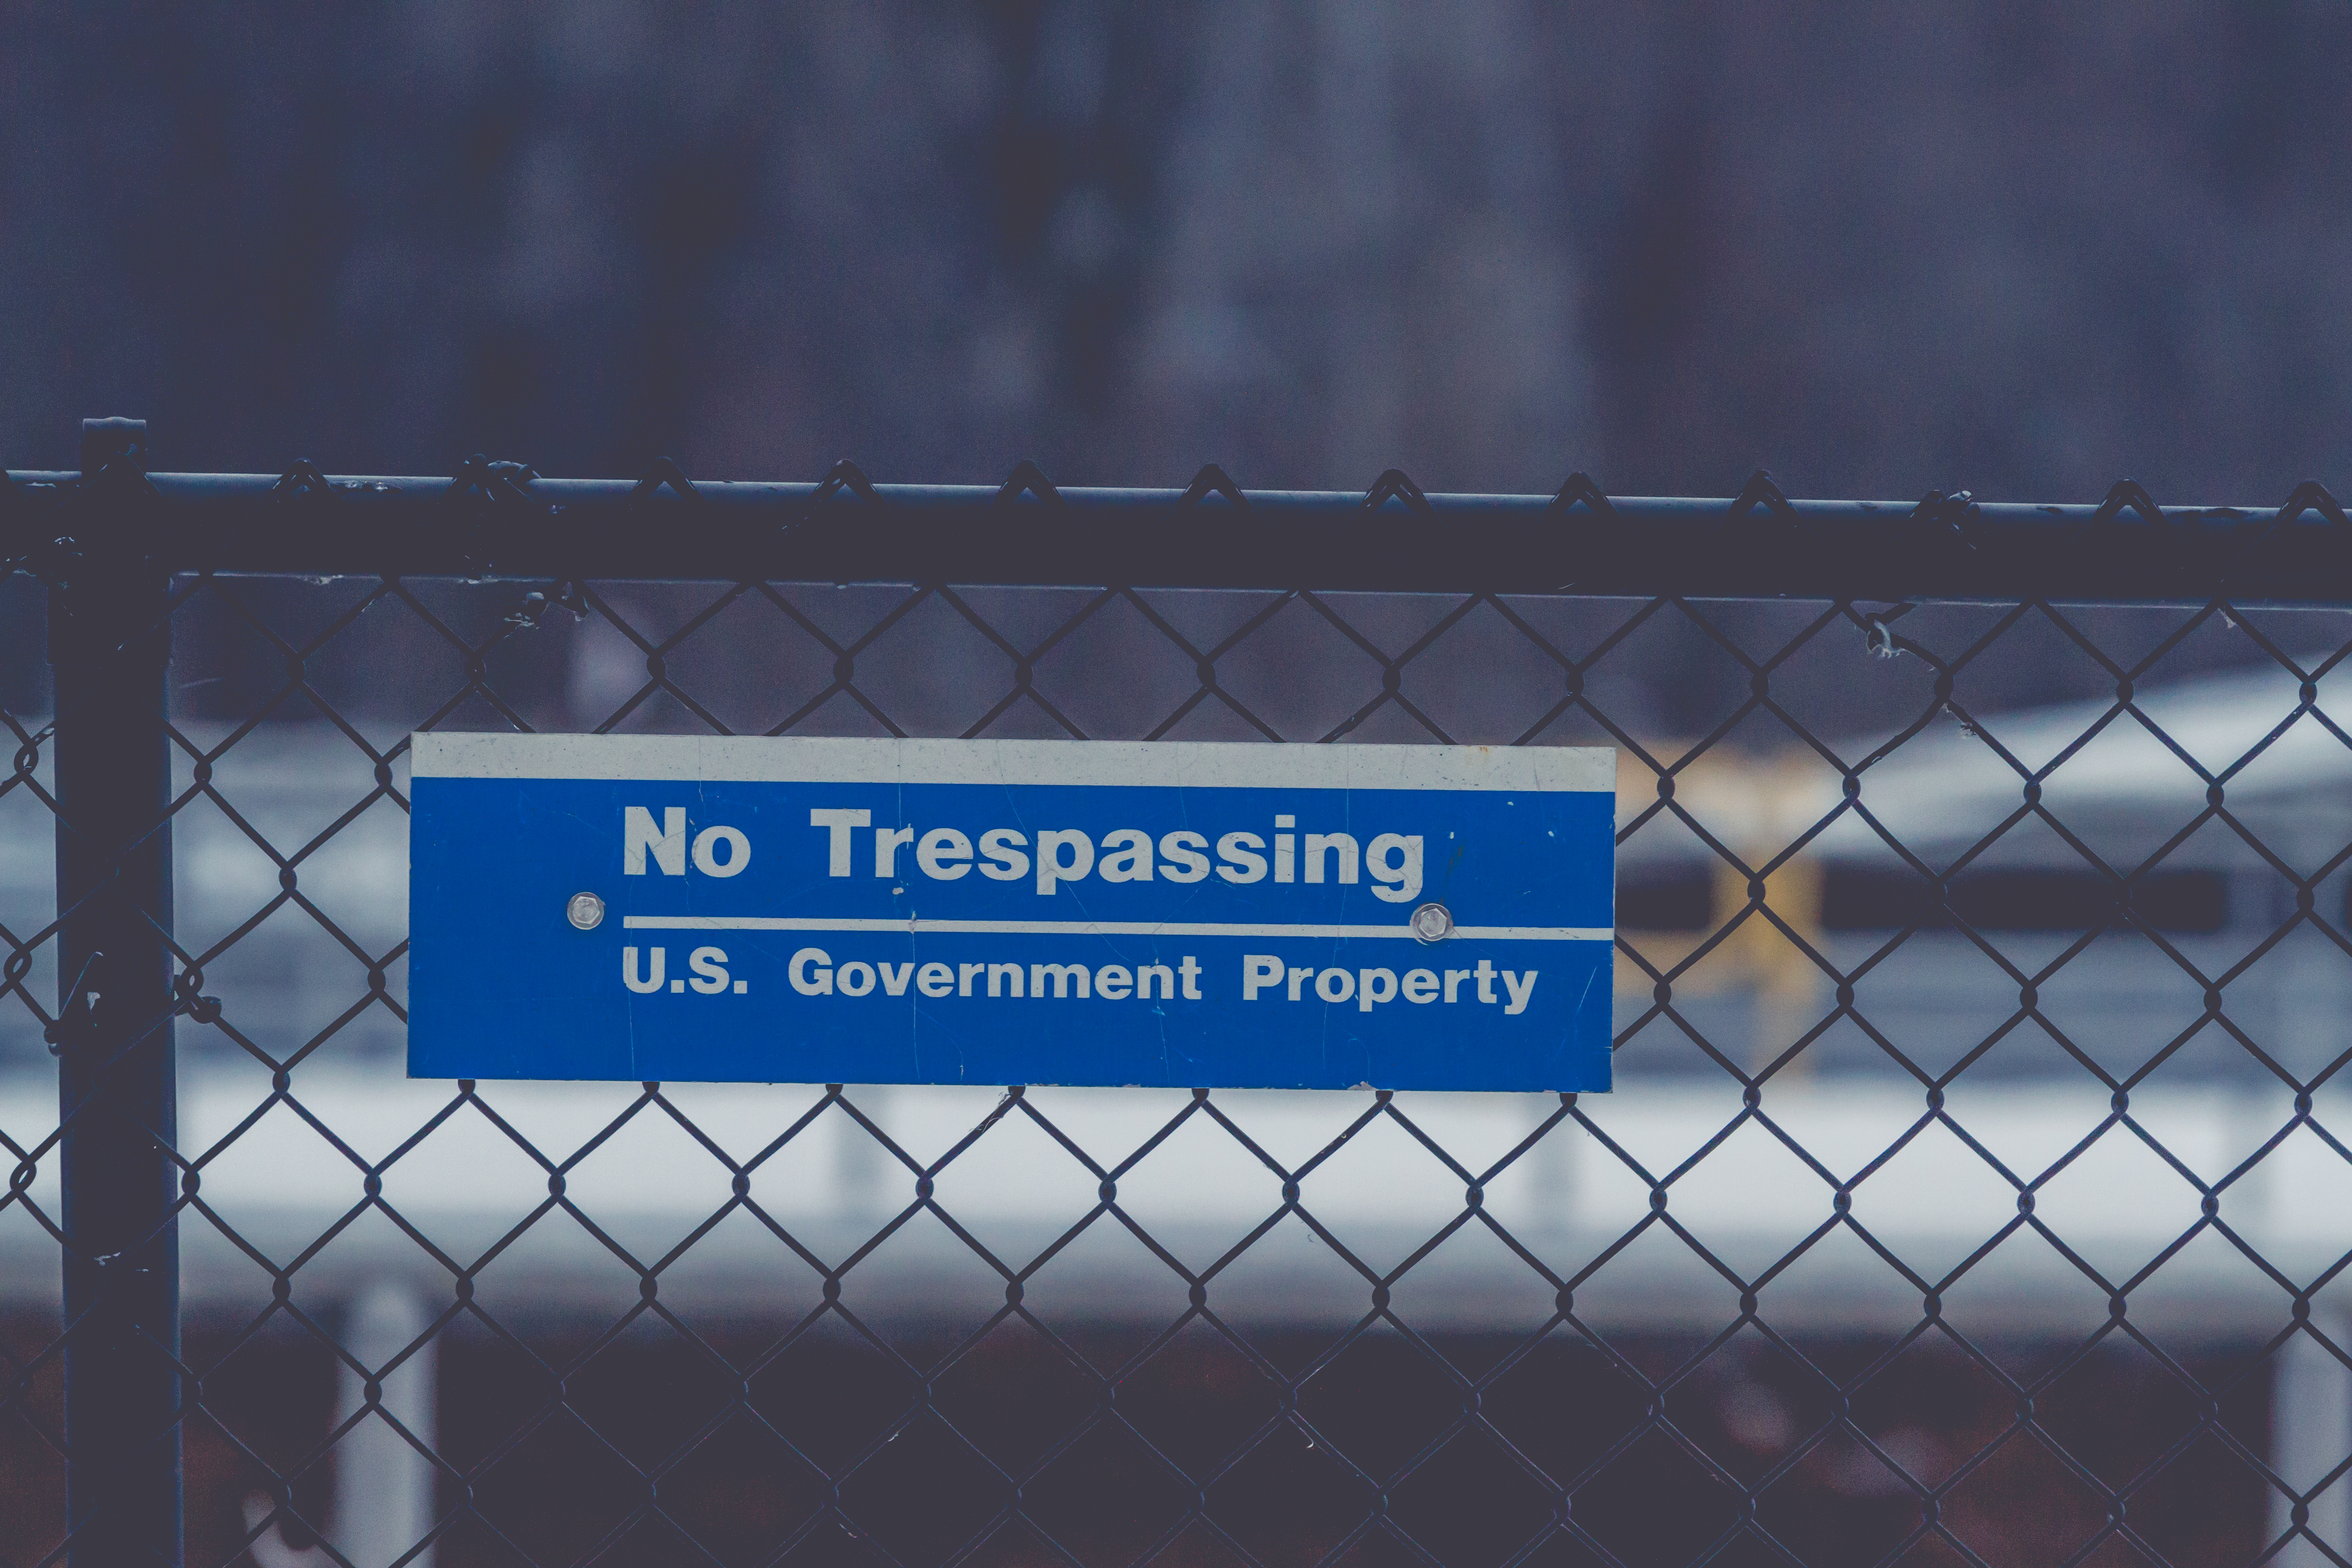 Should the U.S. government be allowed to seize private property?